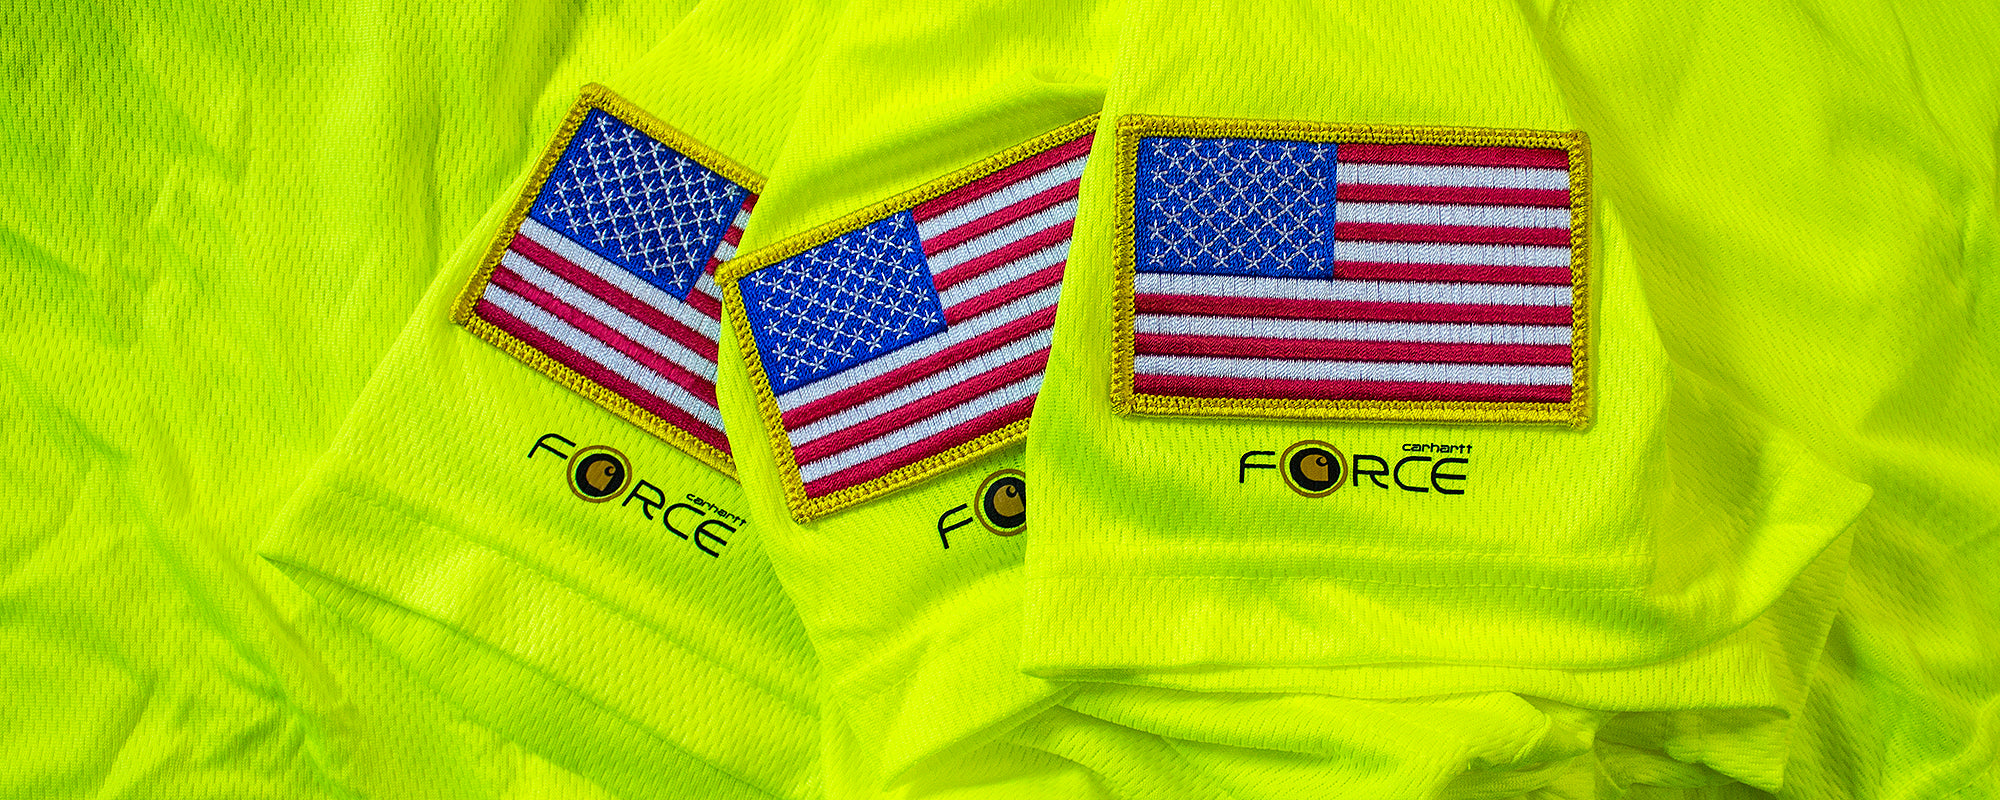 Professional embroidery examples of American flag patches sewn onto Carharrt safety green performance shirts at Strange Planet Printing in Brockton, MA